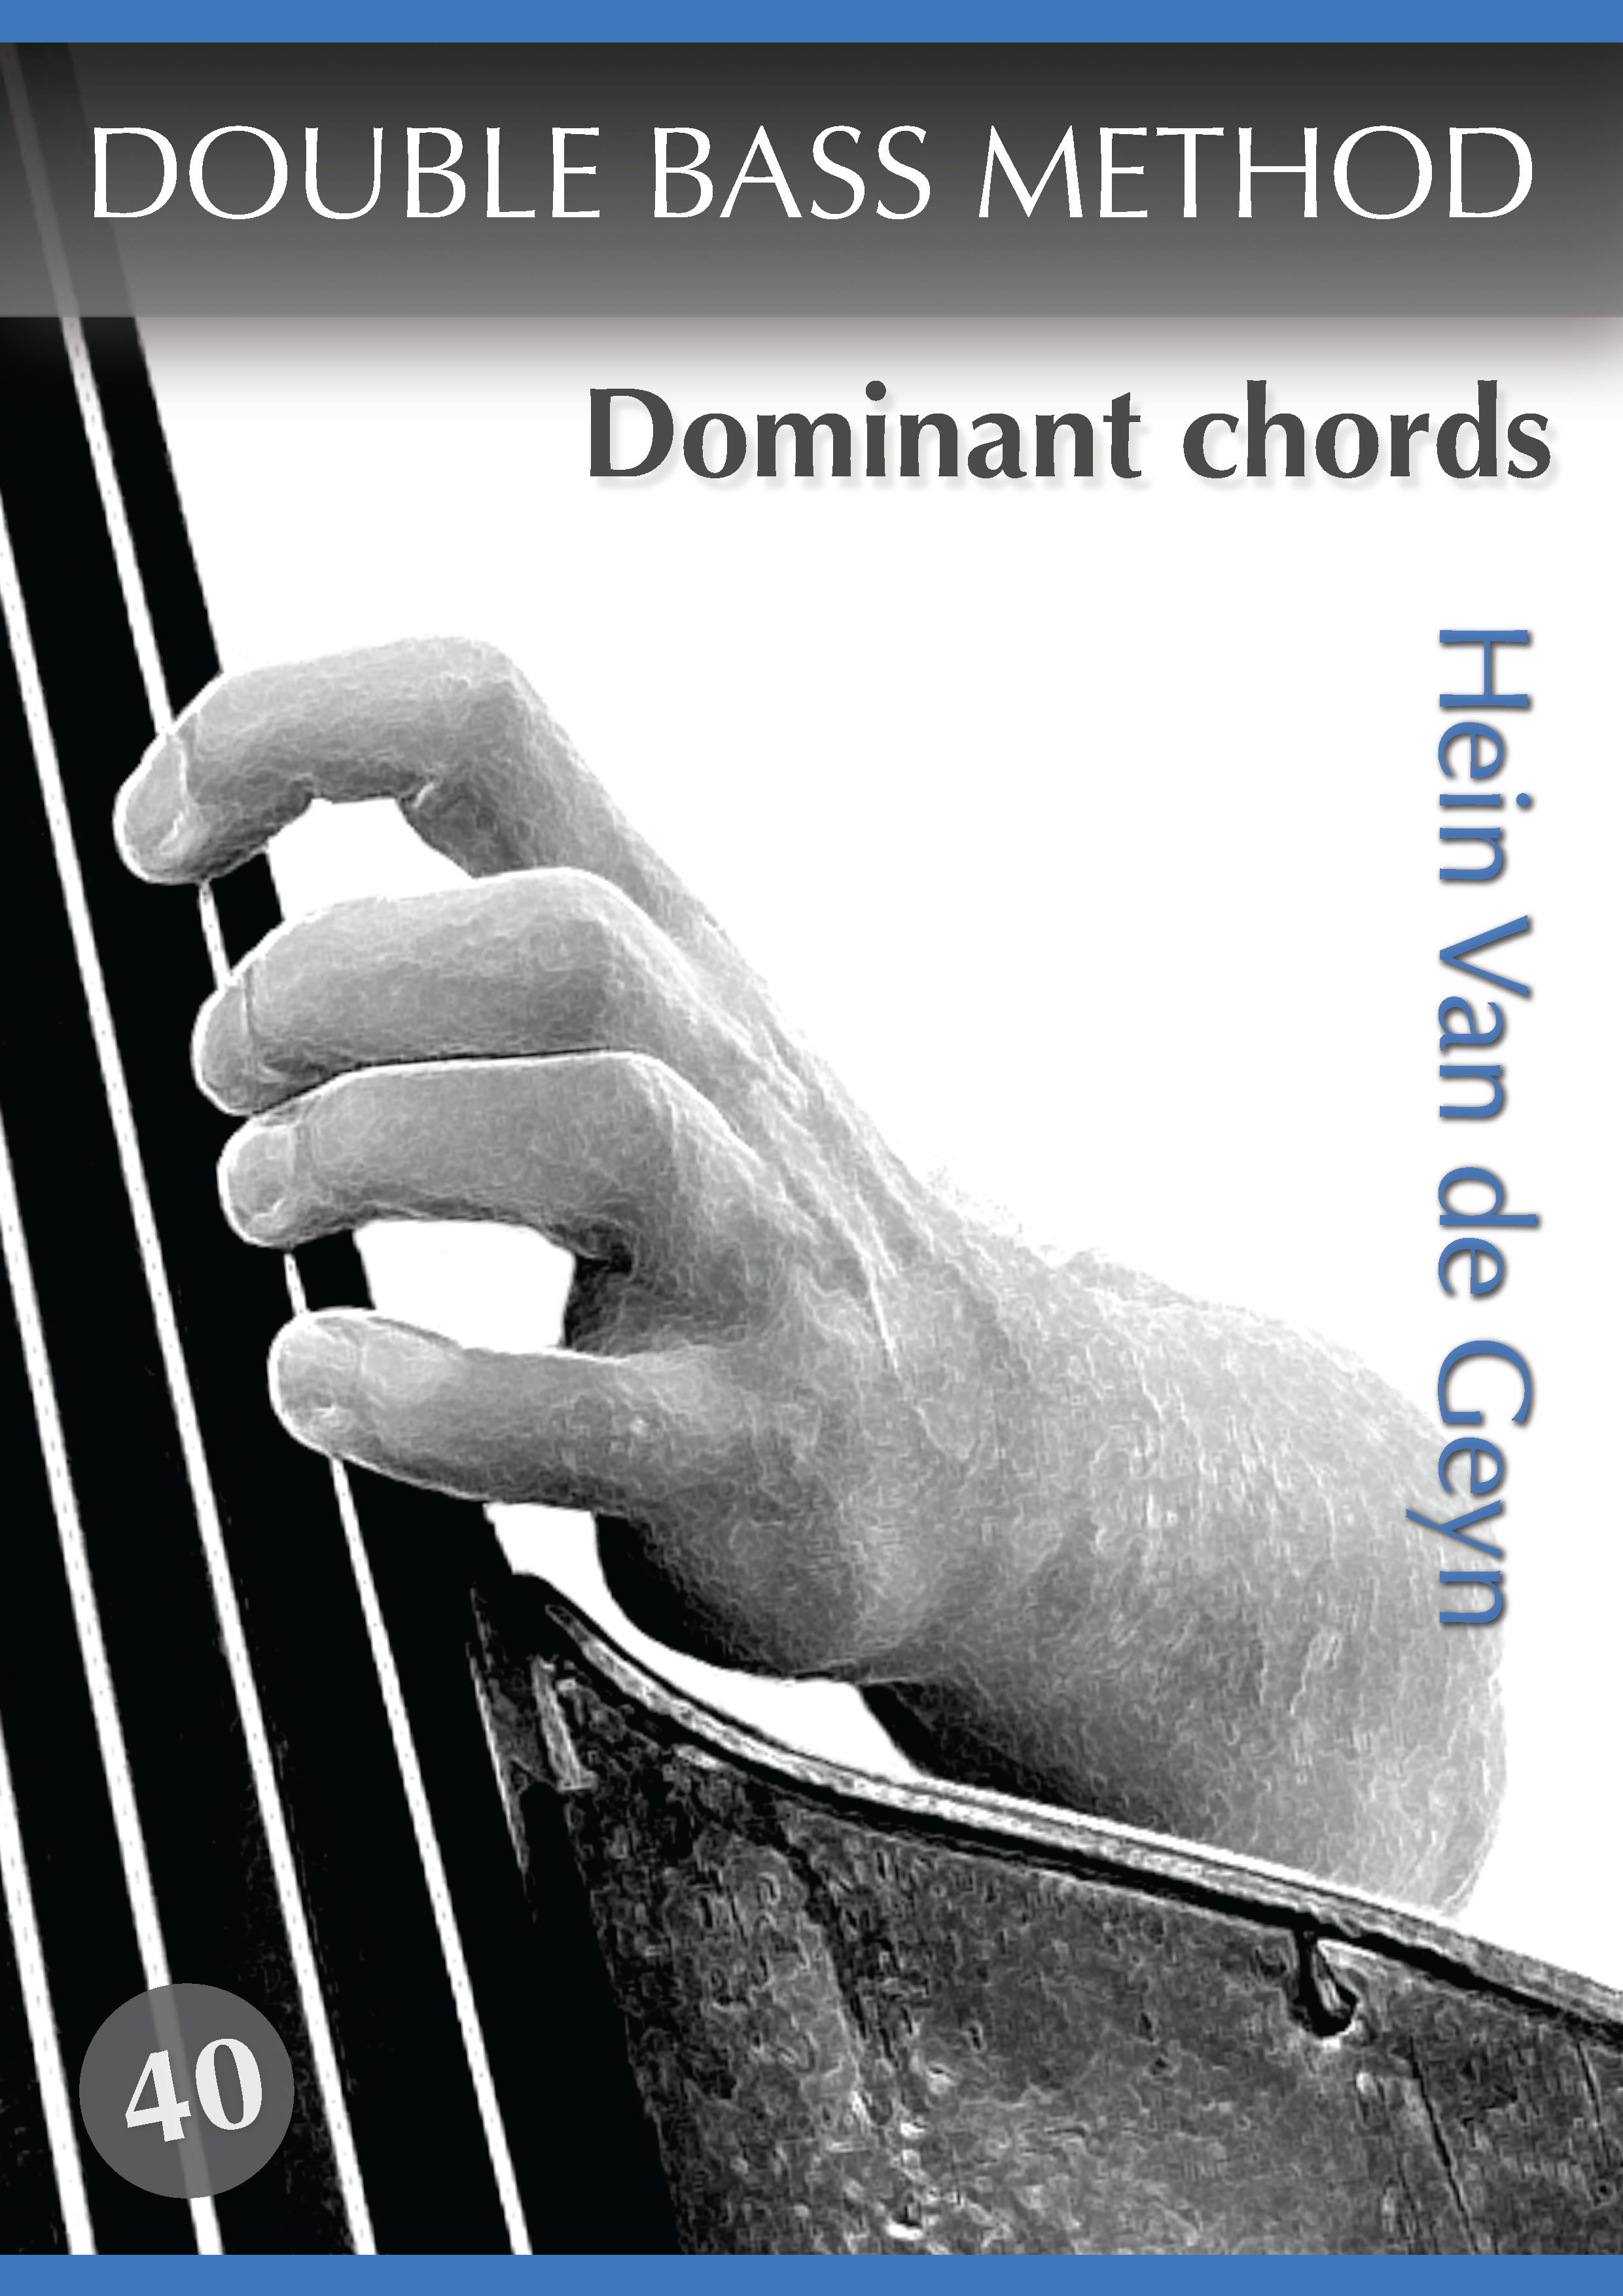 Dominant chords - Hein Van de Geyn - Double Bass Method